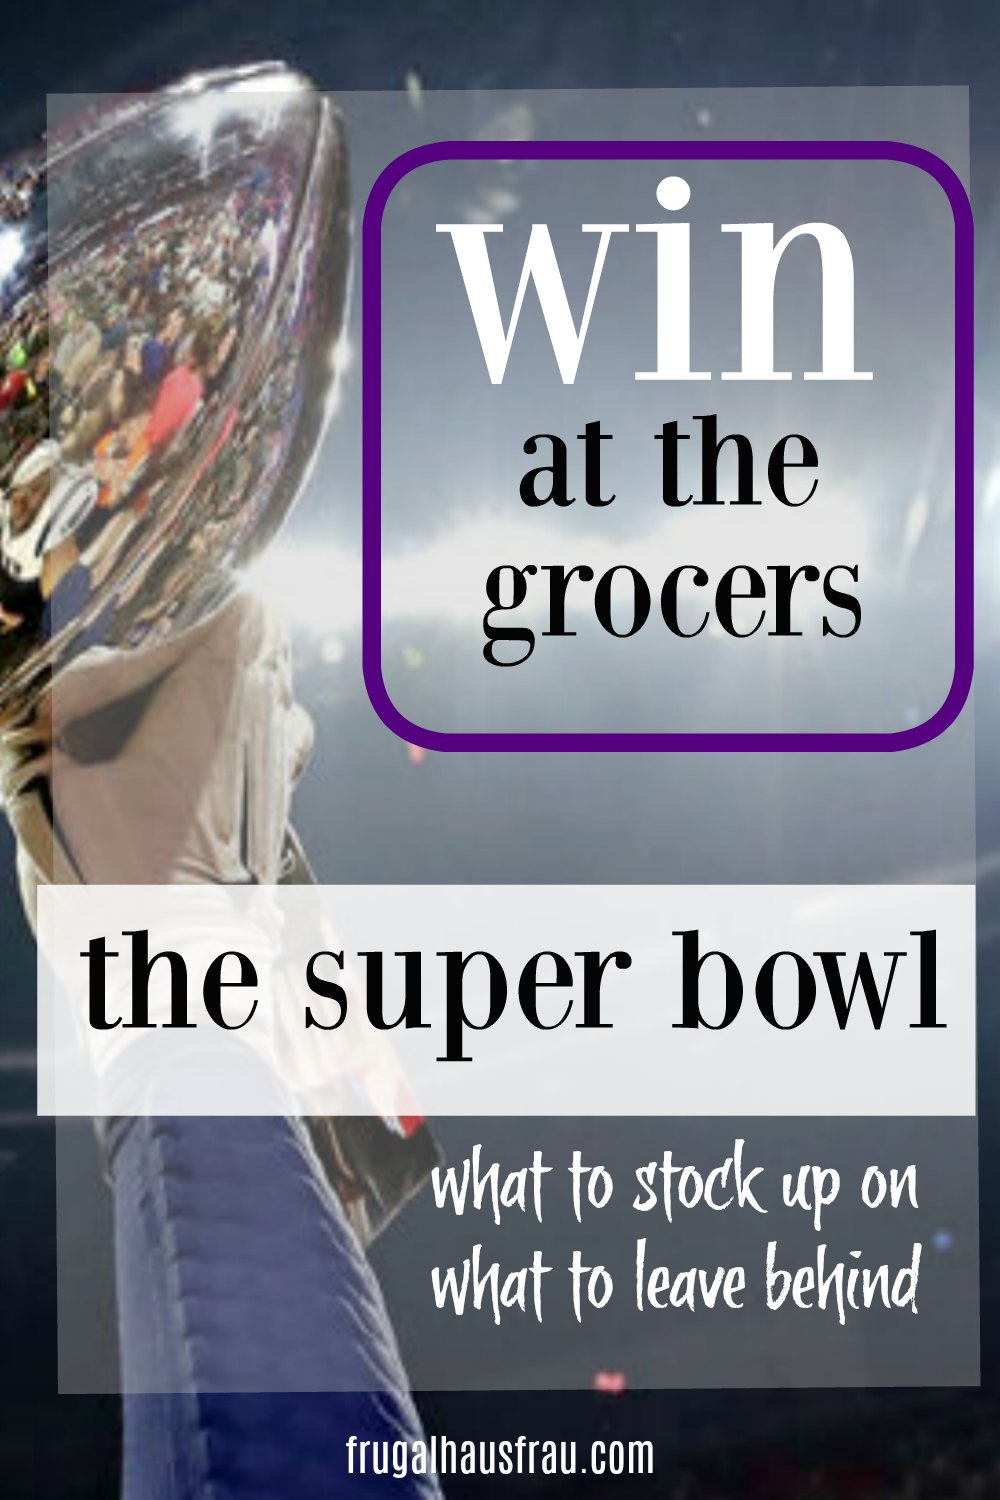 Even if you're not a football fan, you'll be a fan of the sales once you learn to leverage those savings to your advantage! See what's likely to be on sale (it's not just party food) when it might be at a great price again, and get an idea of how much you should buy, what to avoid and how to save the most money on these items! #HolidayGrocerySales #SaveMoneyOnGroceries #HowToBuySmart #SaveMoneyOnGroceriesSuperBowl #SaveMoneySuperBowl